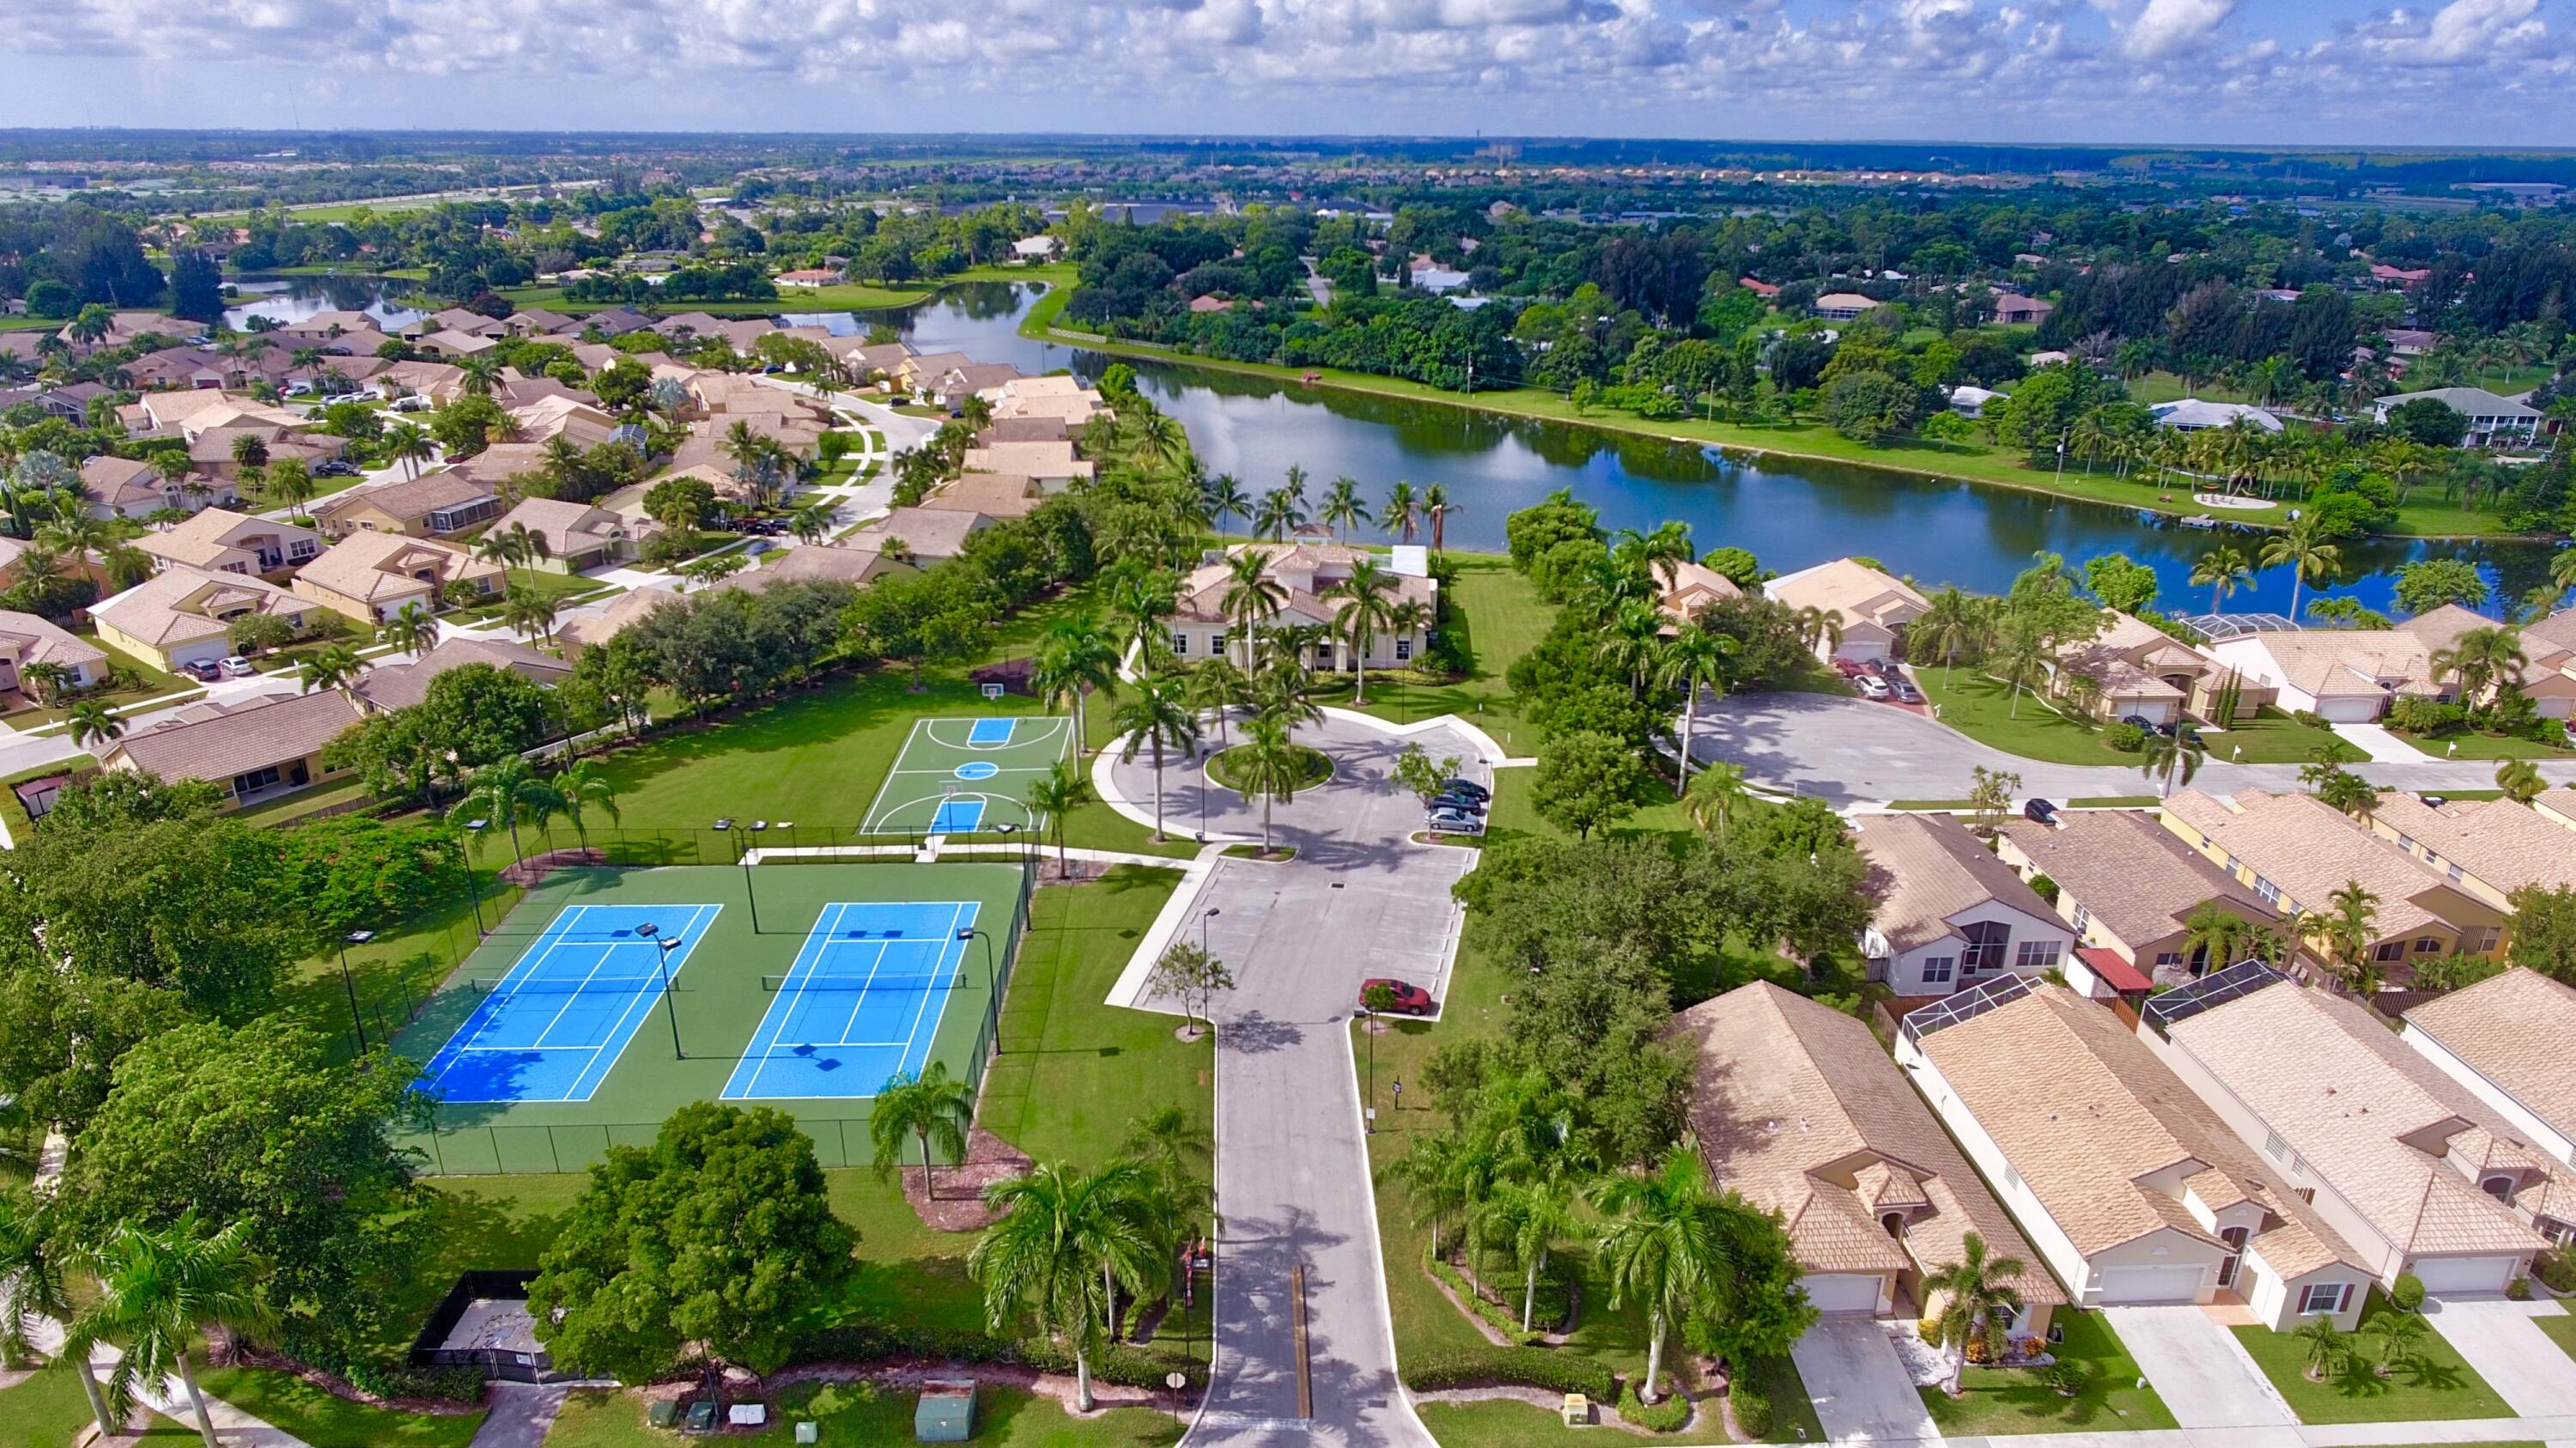 3 Verona Lakes Clubhouse and Sports copy